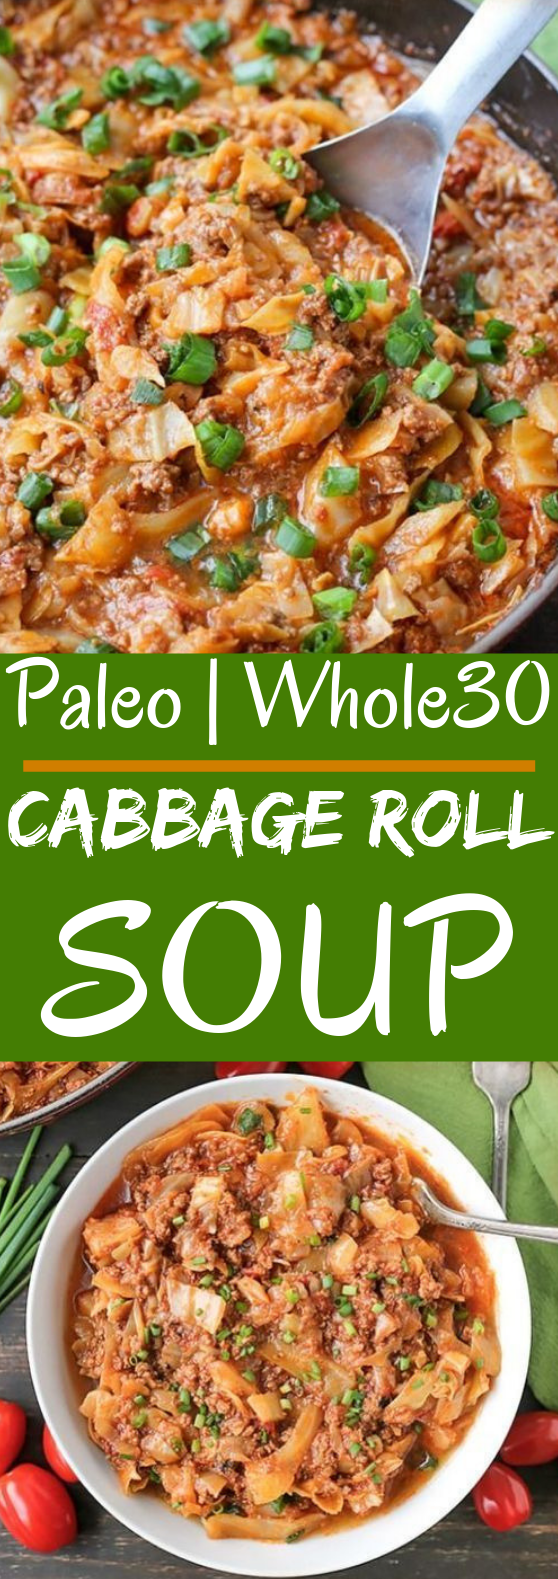 Paleo Whole30 Cabbage Roll in a Bowl #healthy #paleo